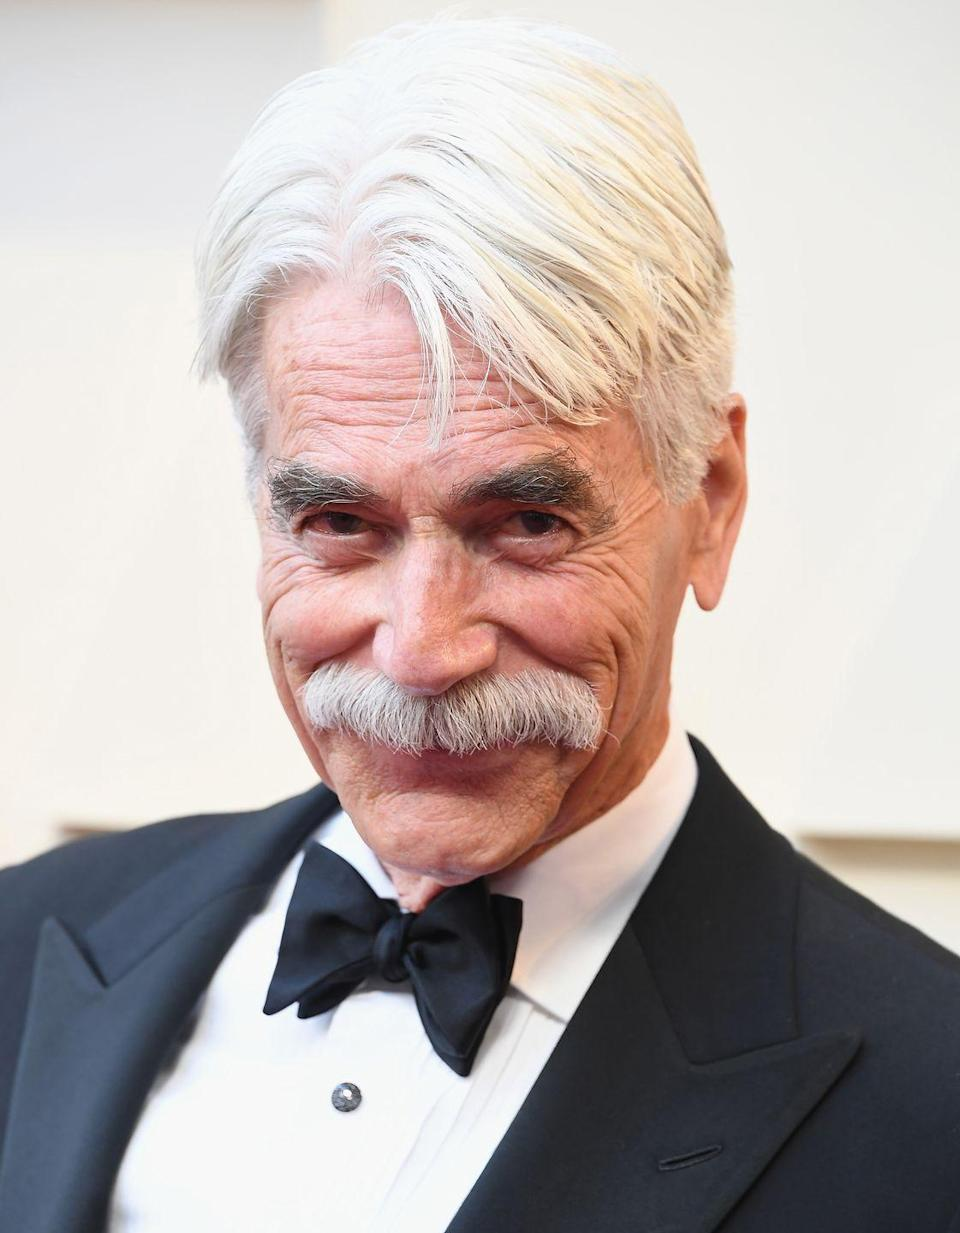 <p>Though Elliott's slow drawl has become his most famous non-mustached feature, he was told early in his career to lose the accent. Thankfully, Elliott's voice didn't go anywhere.</p>